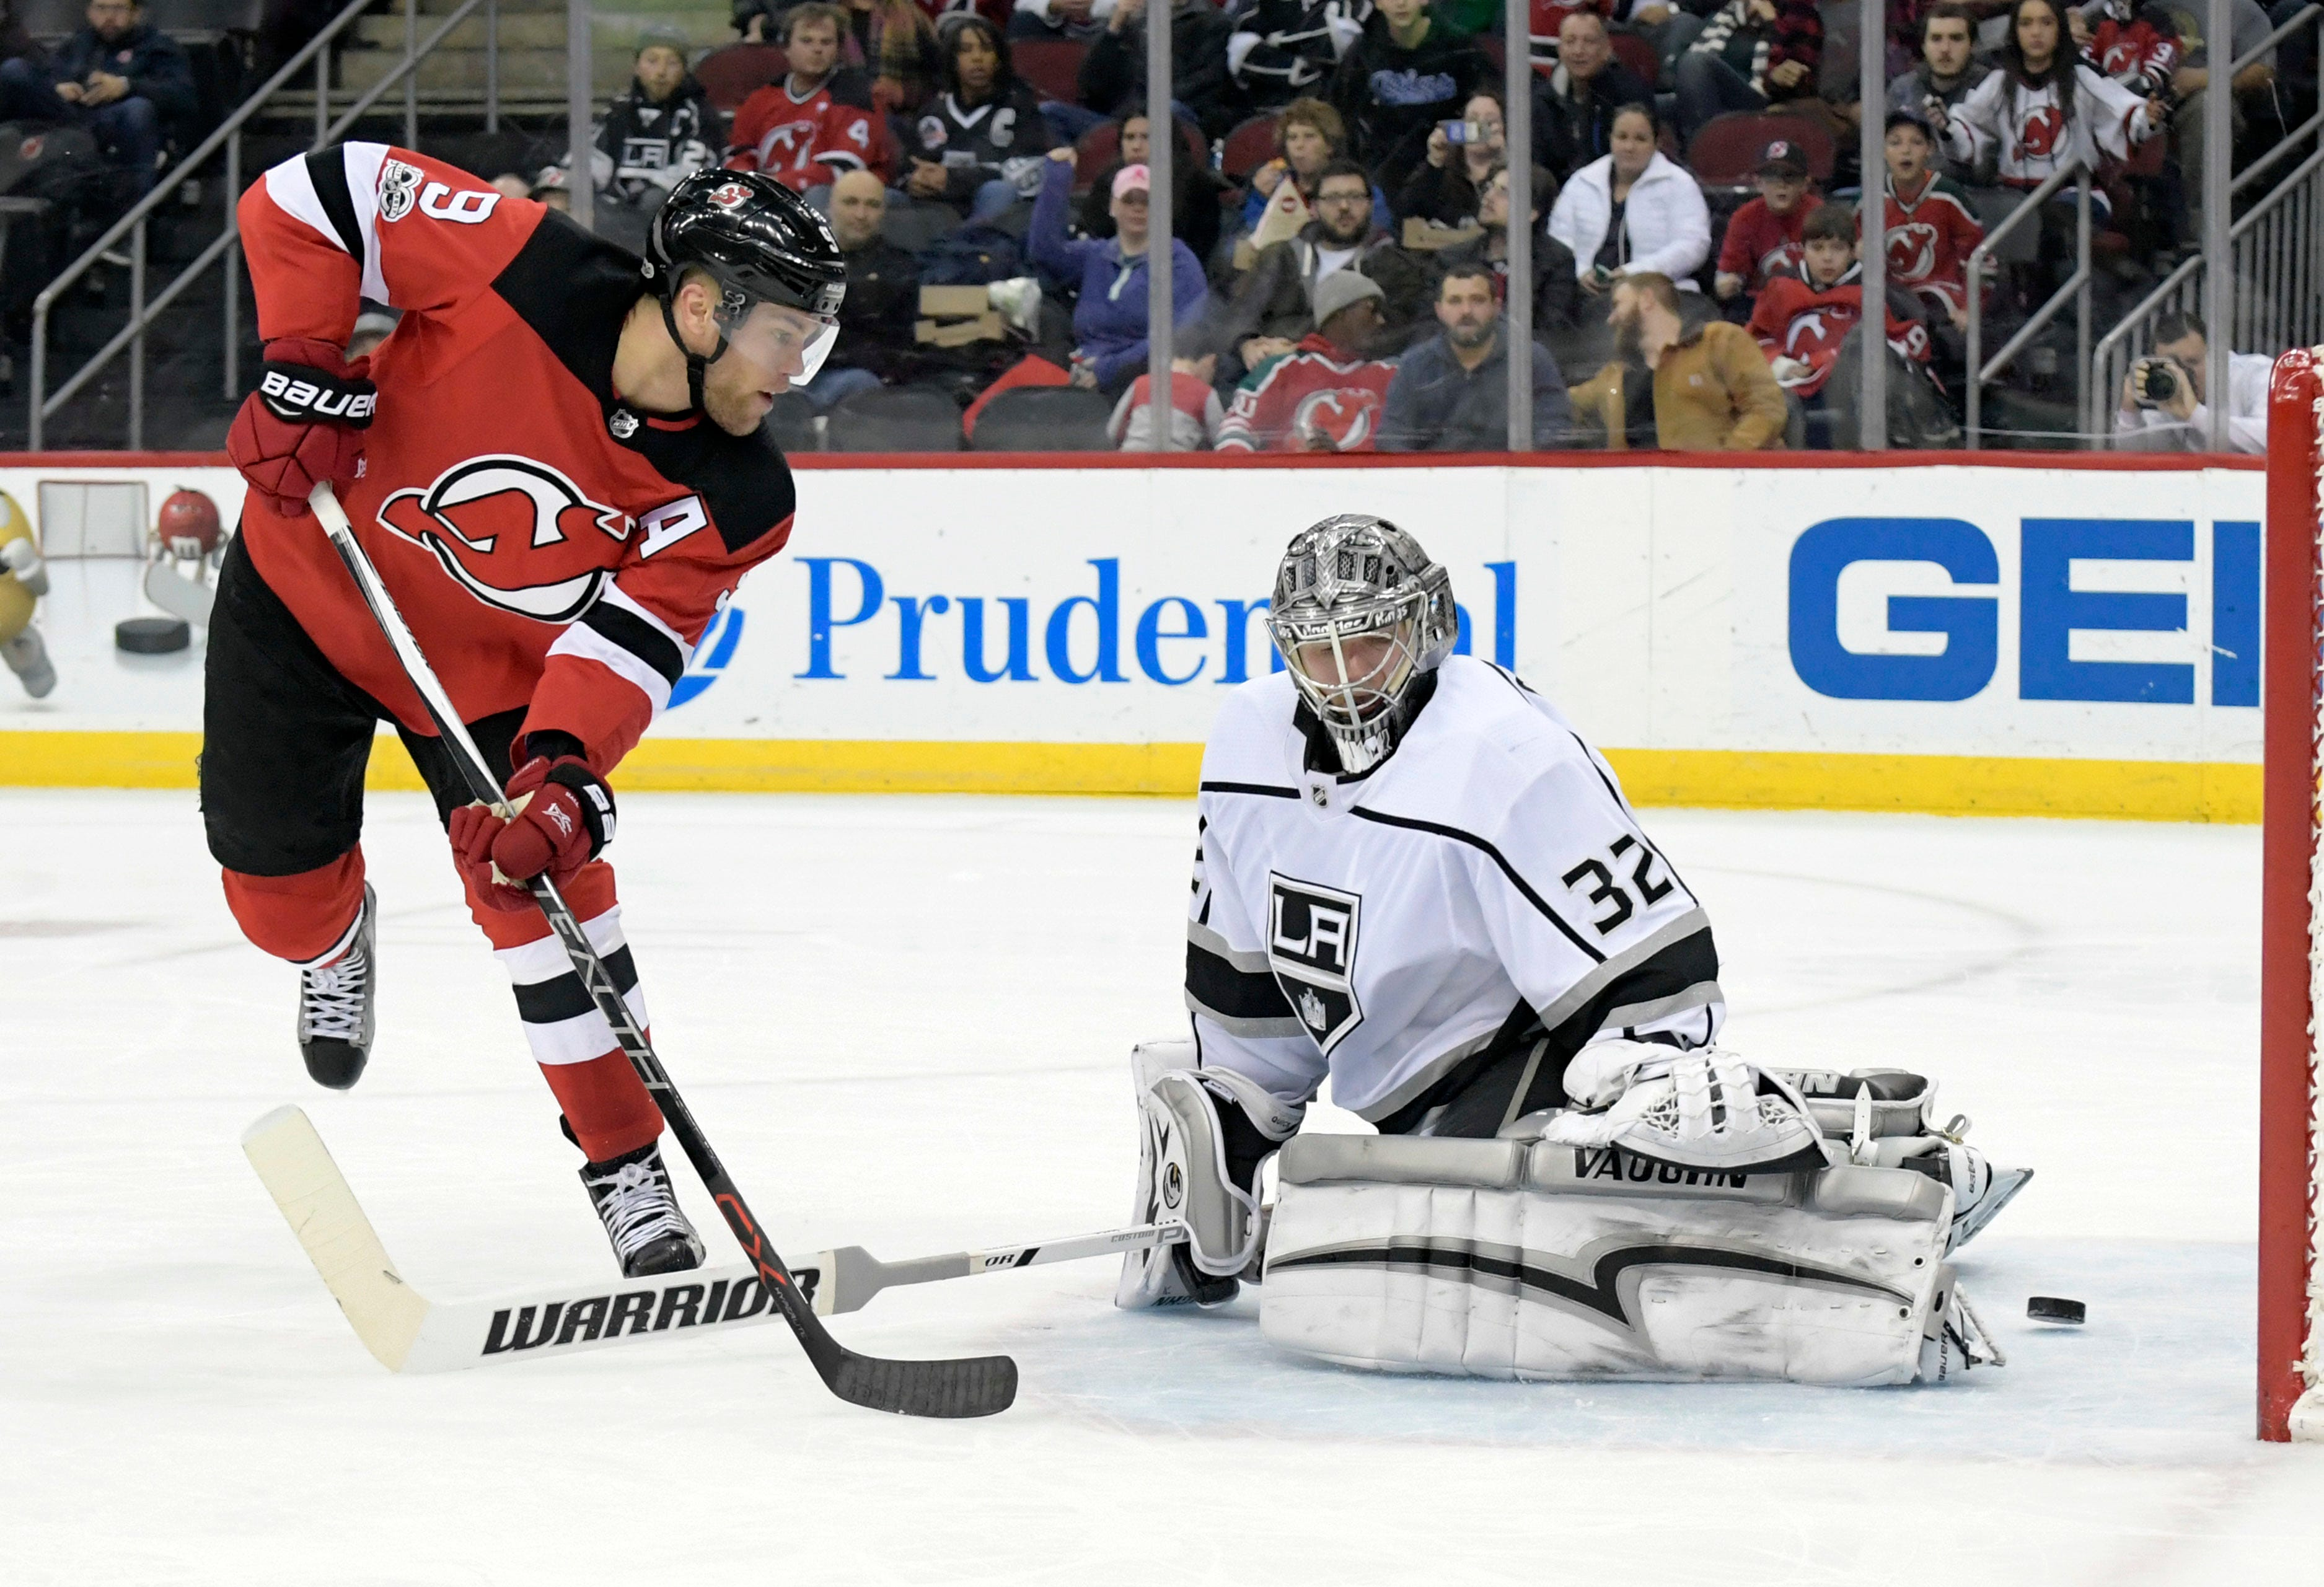 Devils heed lesson, respond with 5-1 win over Kings